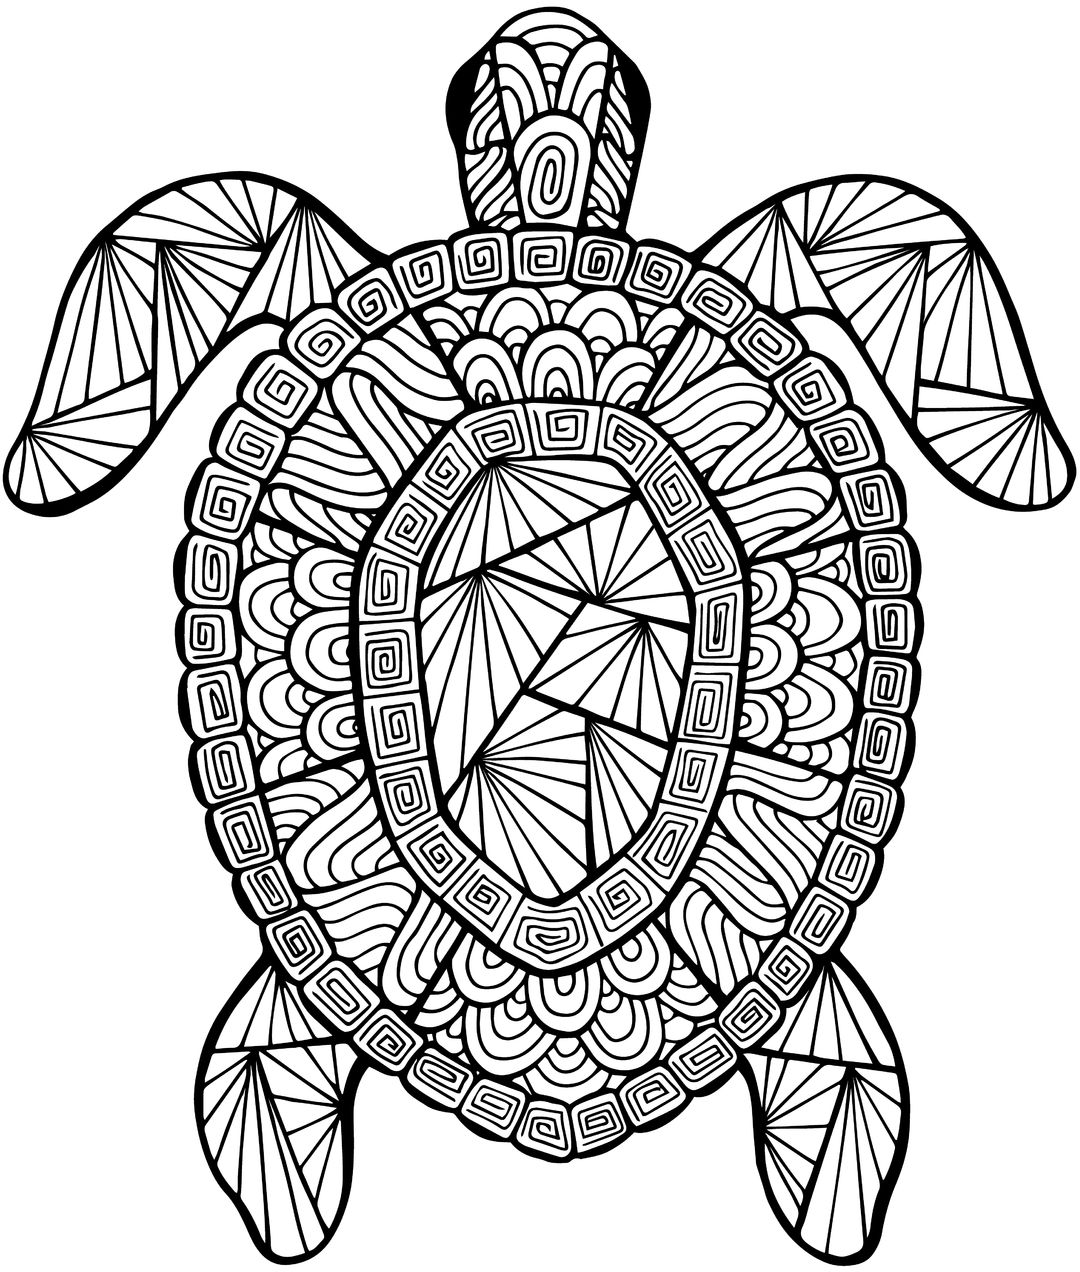 Detailed Sea Turtle Advanced Coloring Page.